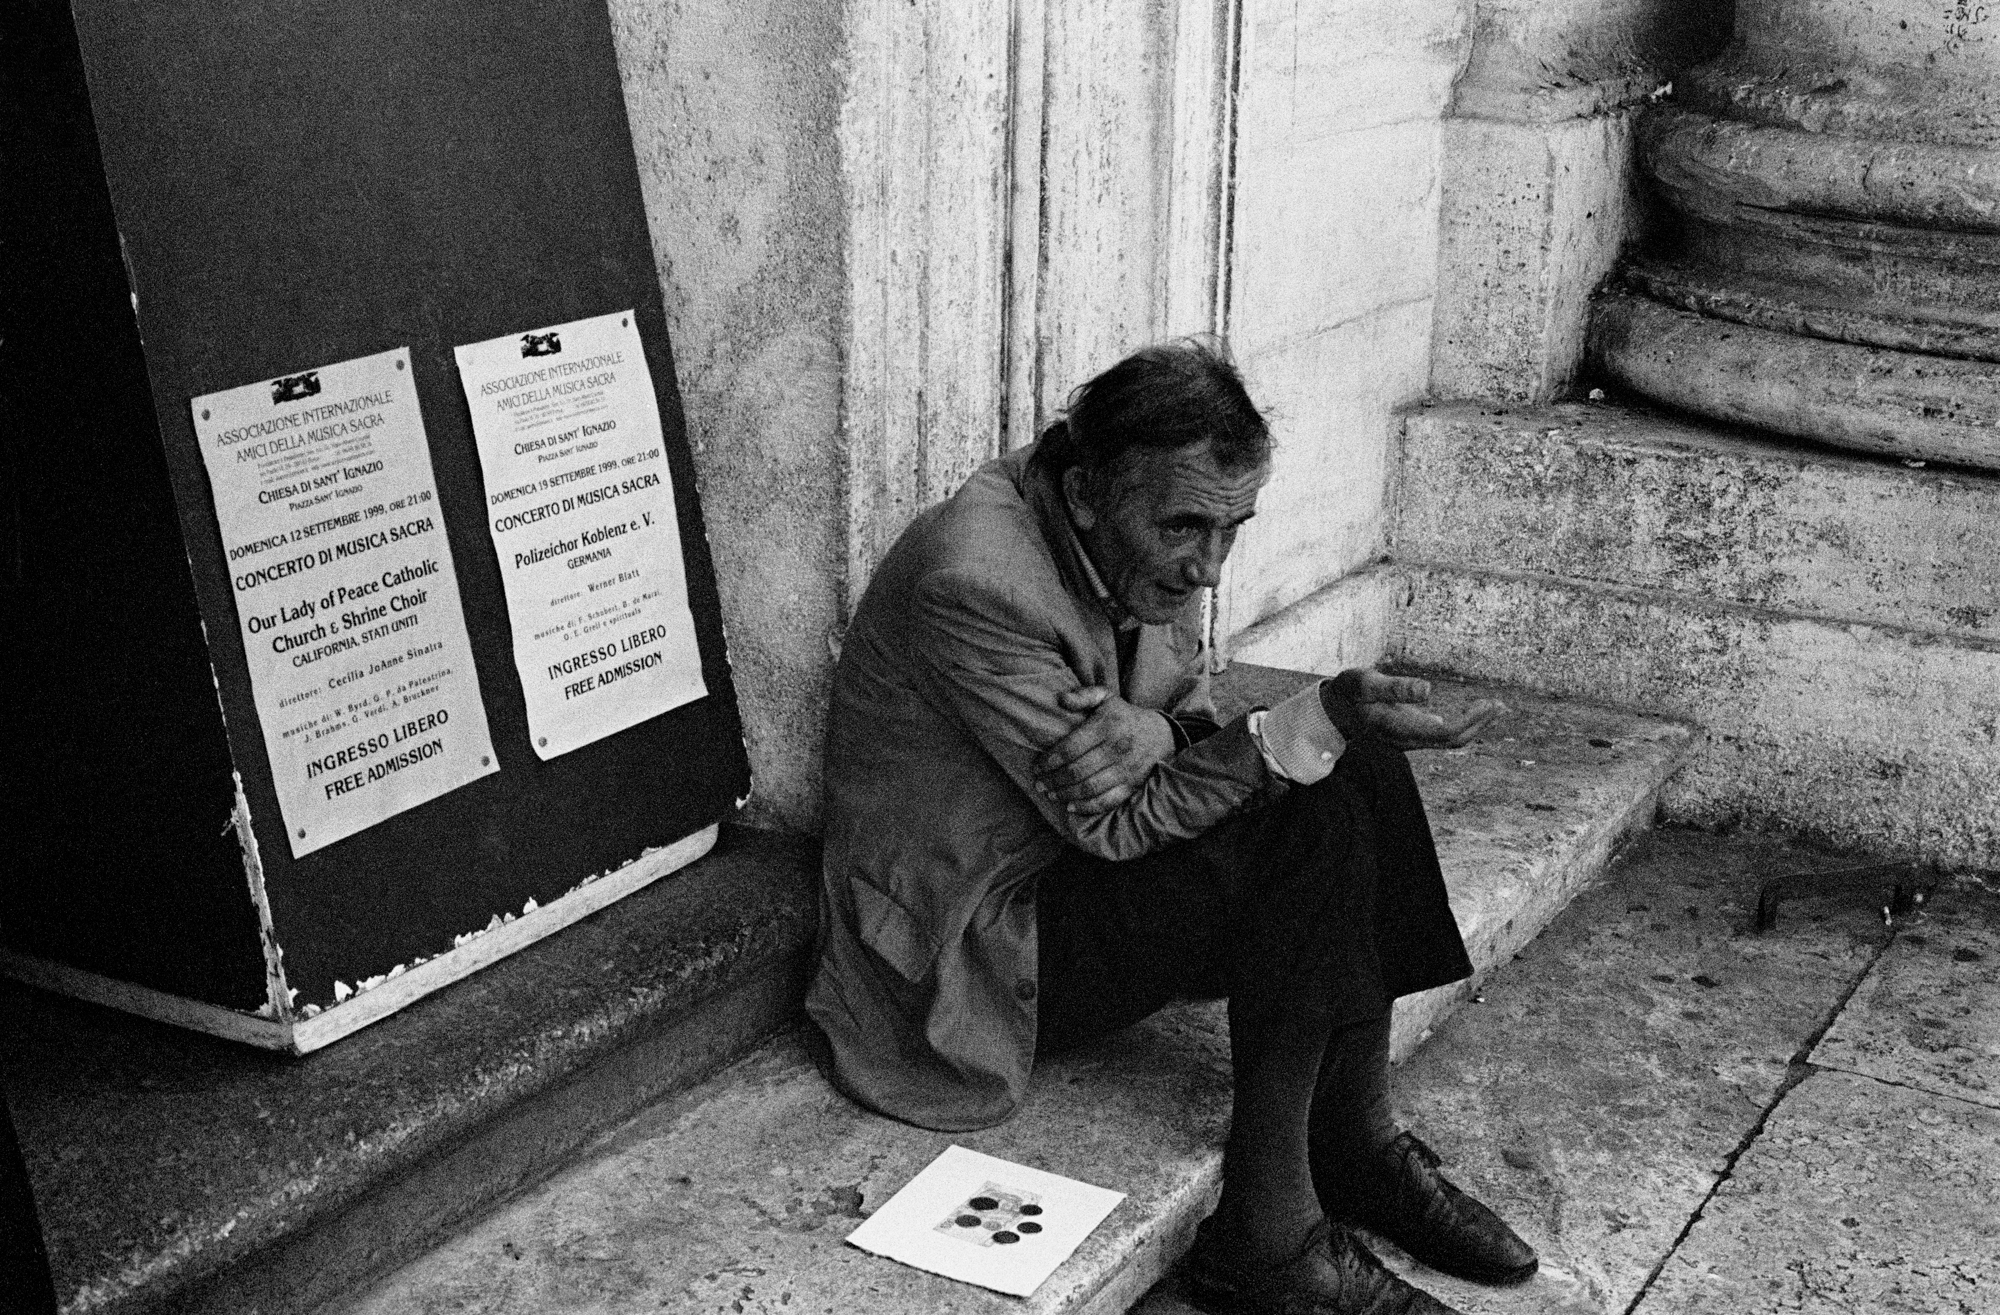 TRAVELS IN ITALY - Beggar - Rome - 1999